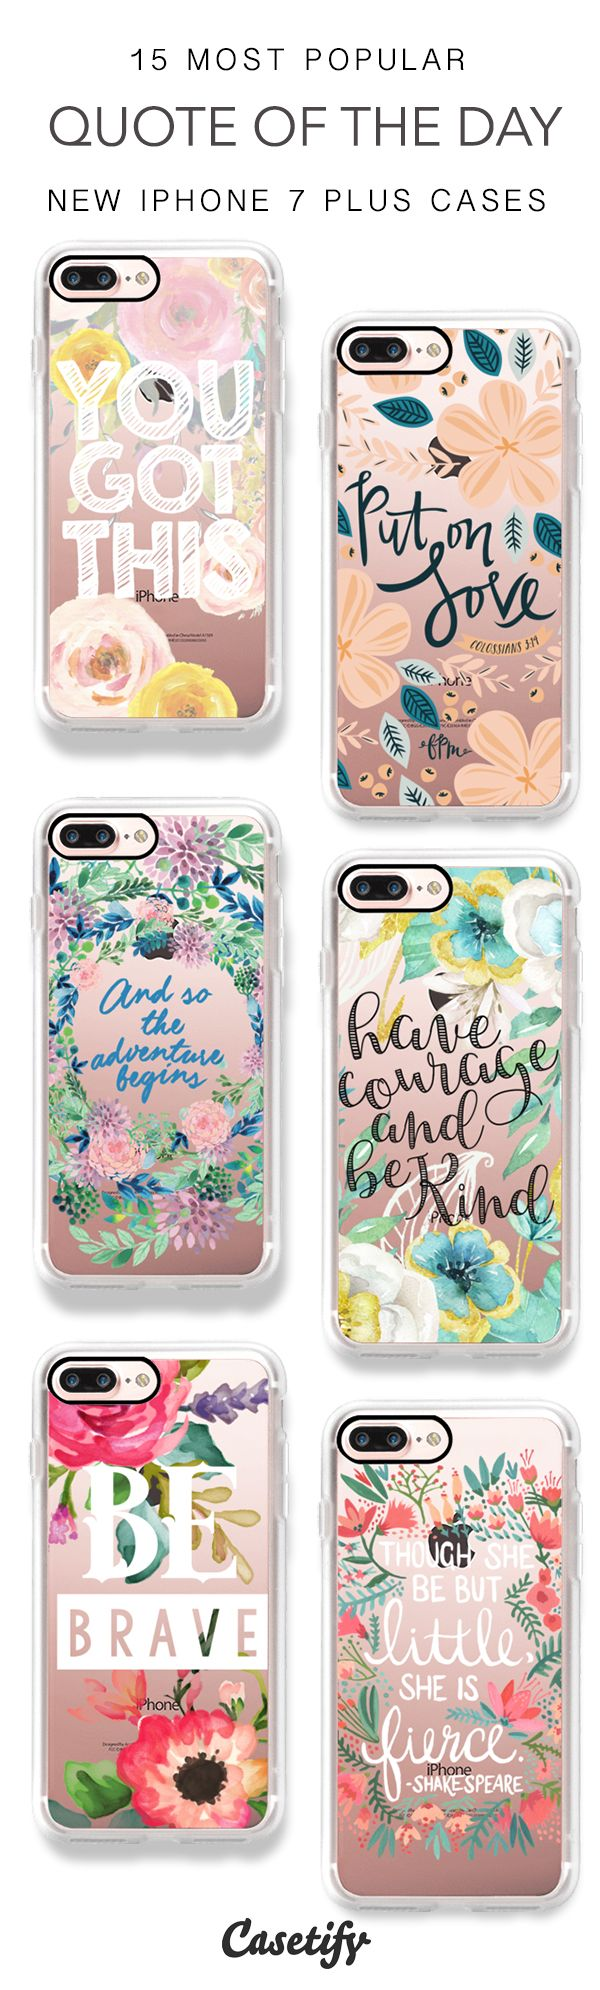 Get inspired by the quotes of the day. 15 Most Popular Quotes & Floral iPhone 7 Cases and iPhone 7 Plus Cases here > https://www.casetify.com/artworks/qKltg5Dh1O